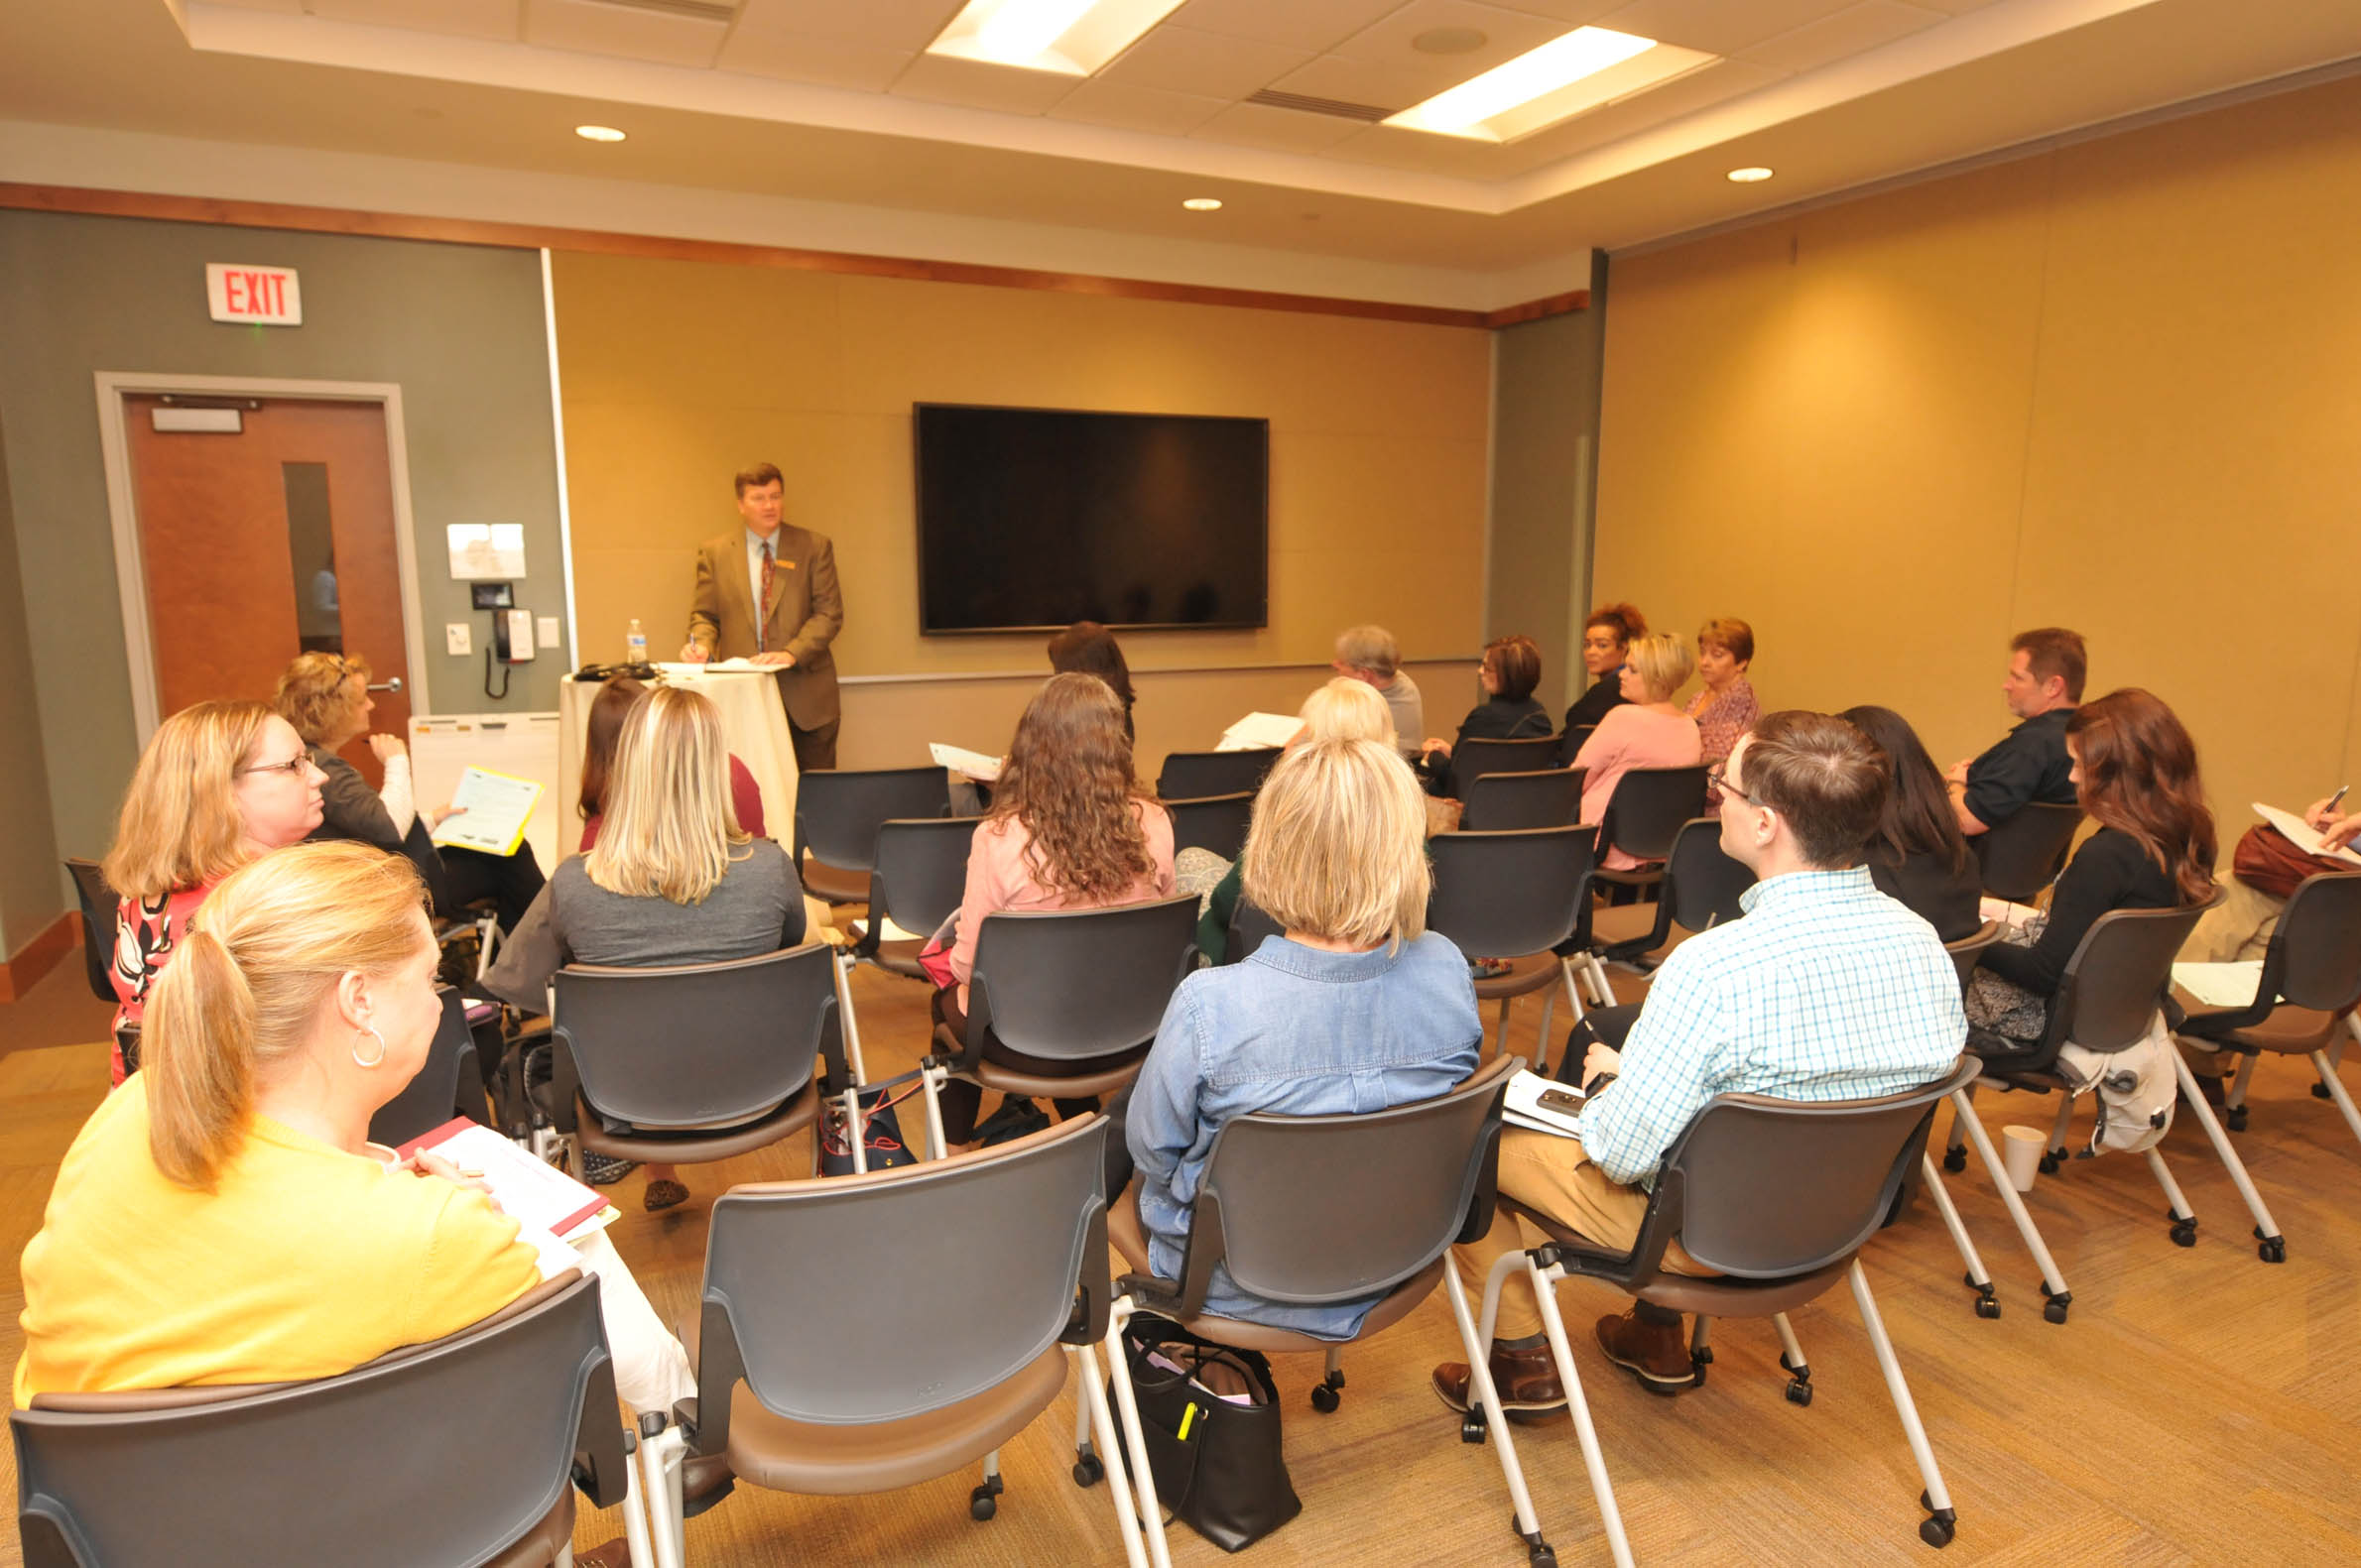 Read the full story, CCCC hosts North Carolina Community College Advising Association